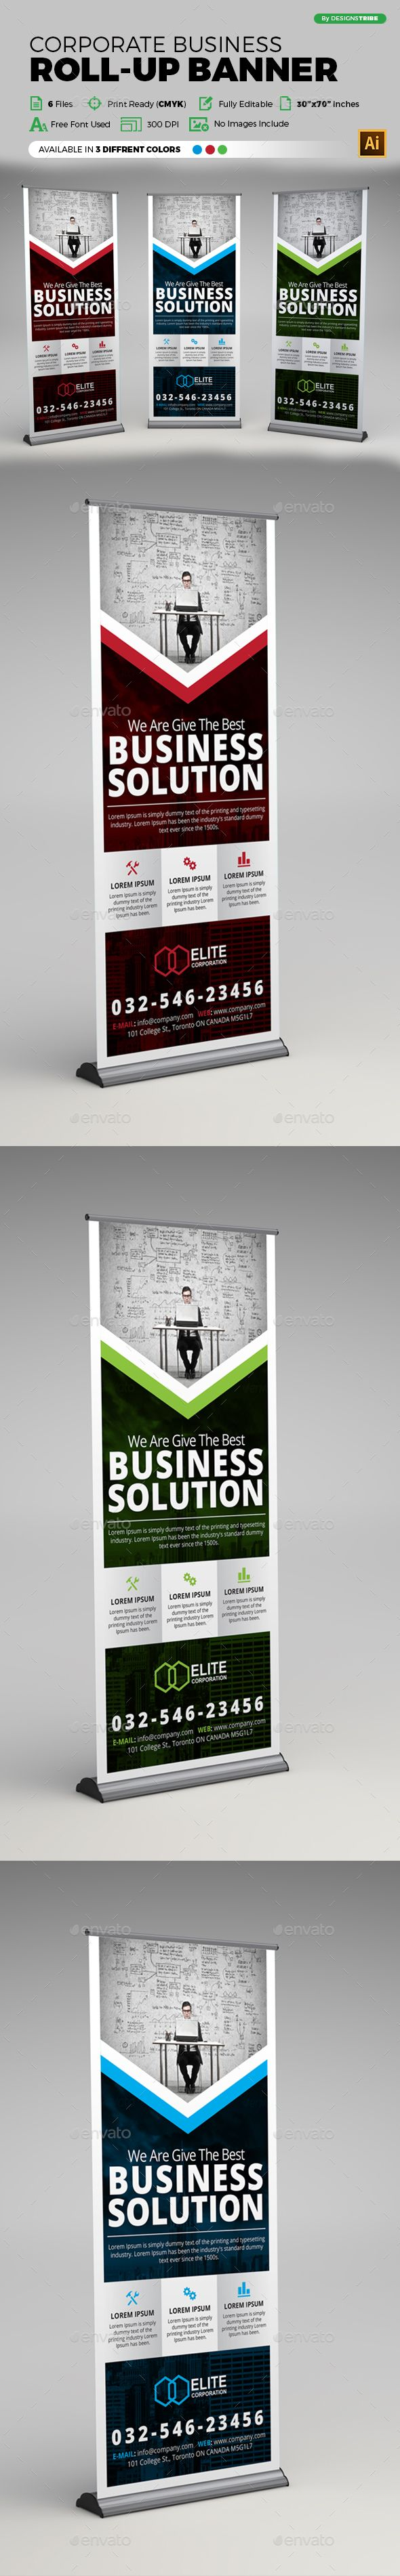 Corporate Business Roll-up Banner Template. This layout is suitable for any business. Very easy to use and customize.  ...........